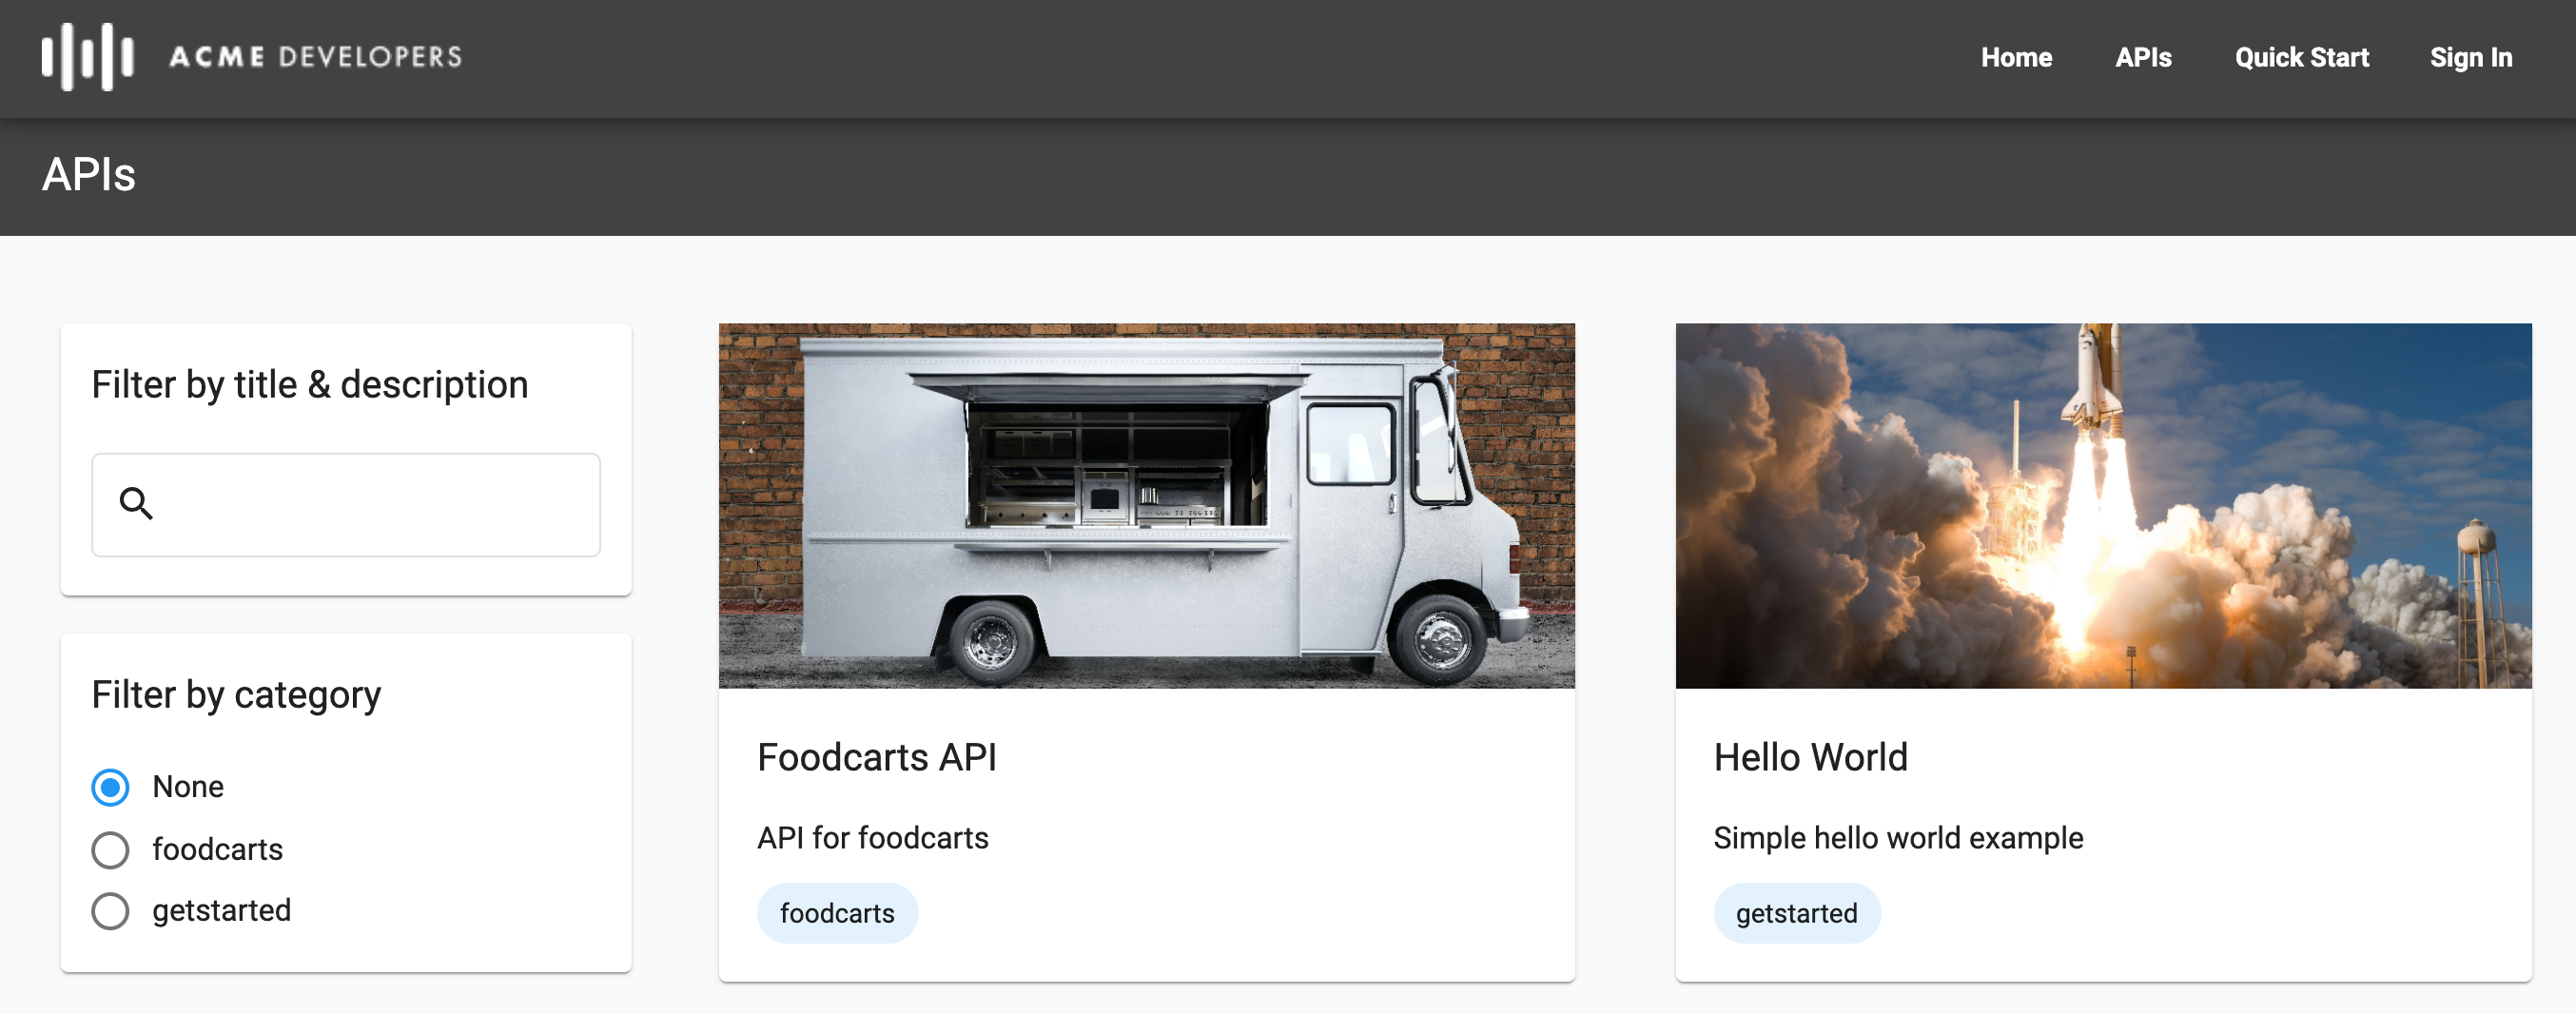 APIs page in live portal showing two categories and use of images